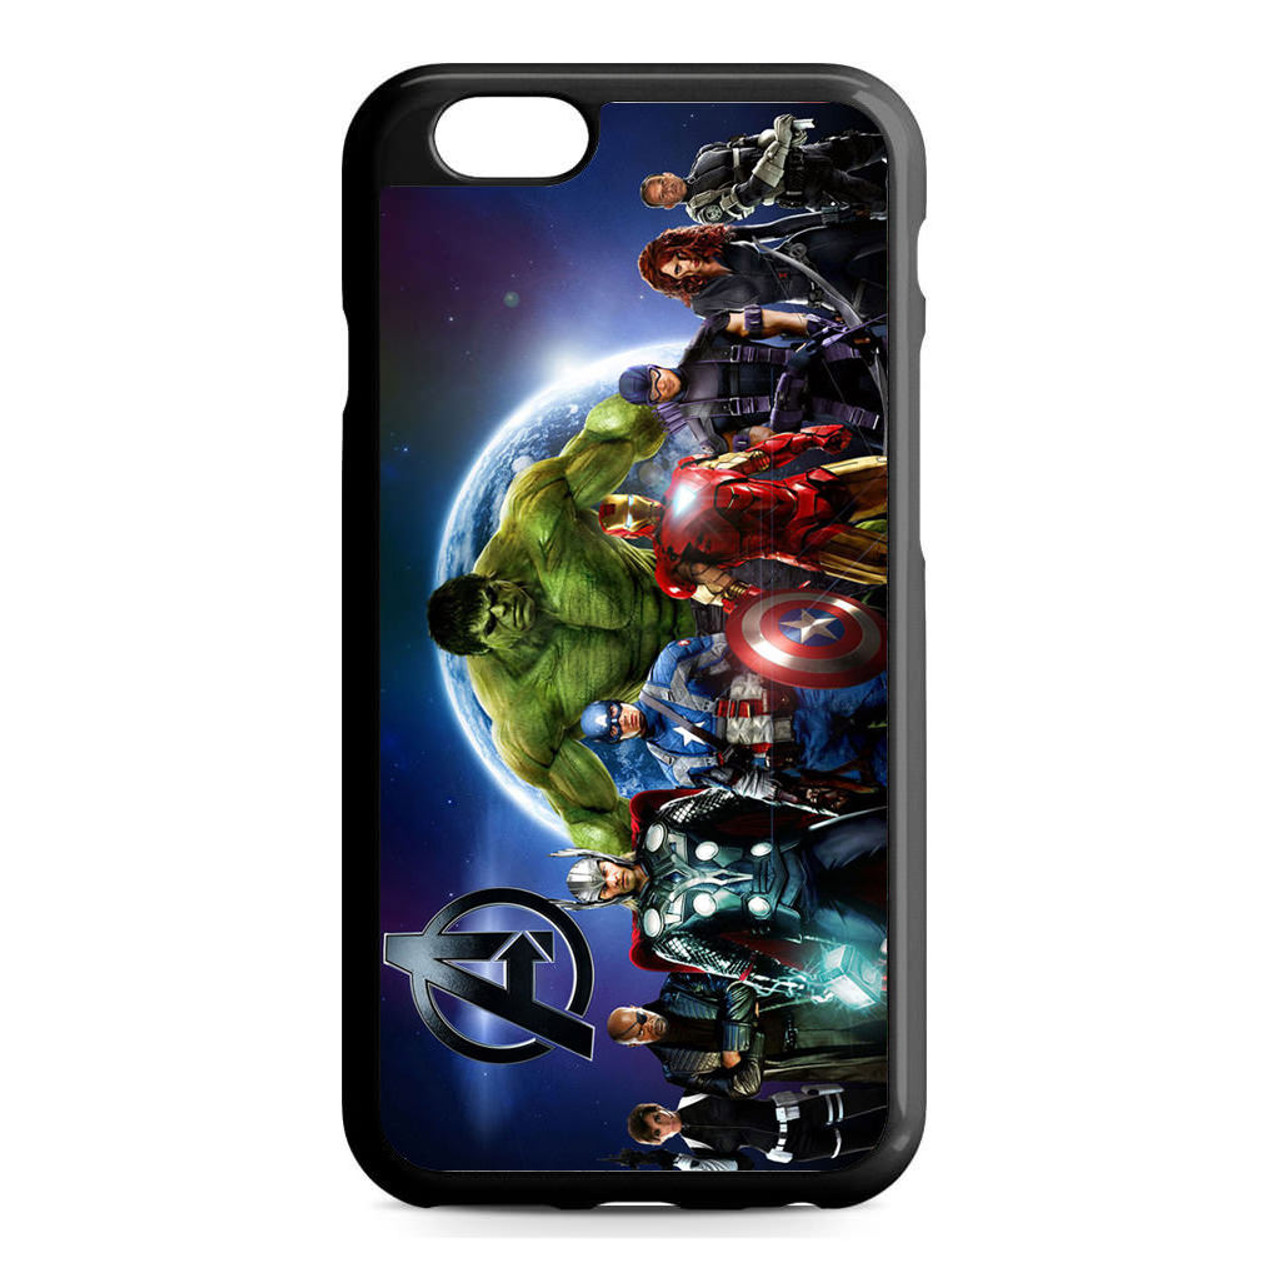 huge selection of 2342f 8ce2f Avengers Age of Ultron iPhone 6/6S Case